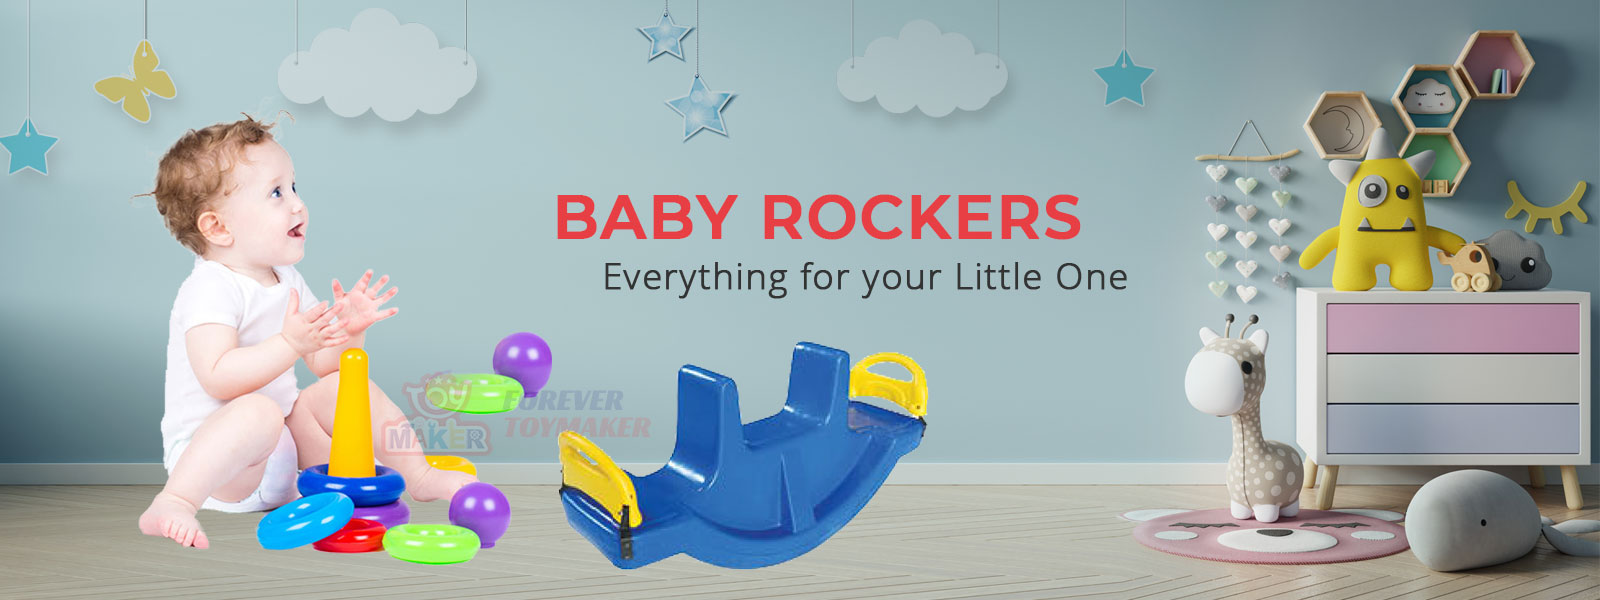 Baby Rockers Manufacturers in Chandigarh